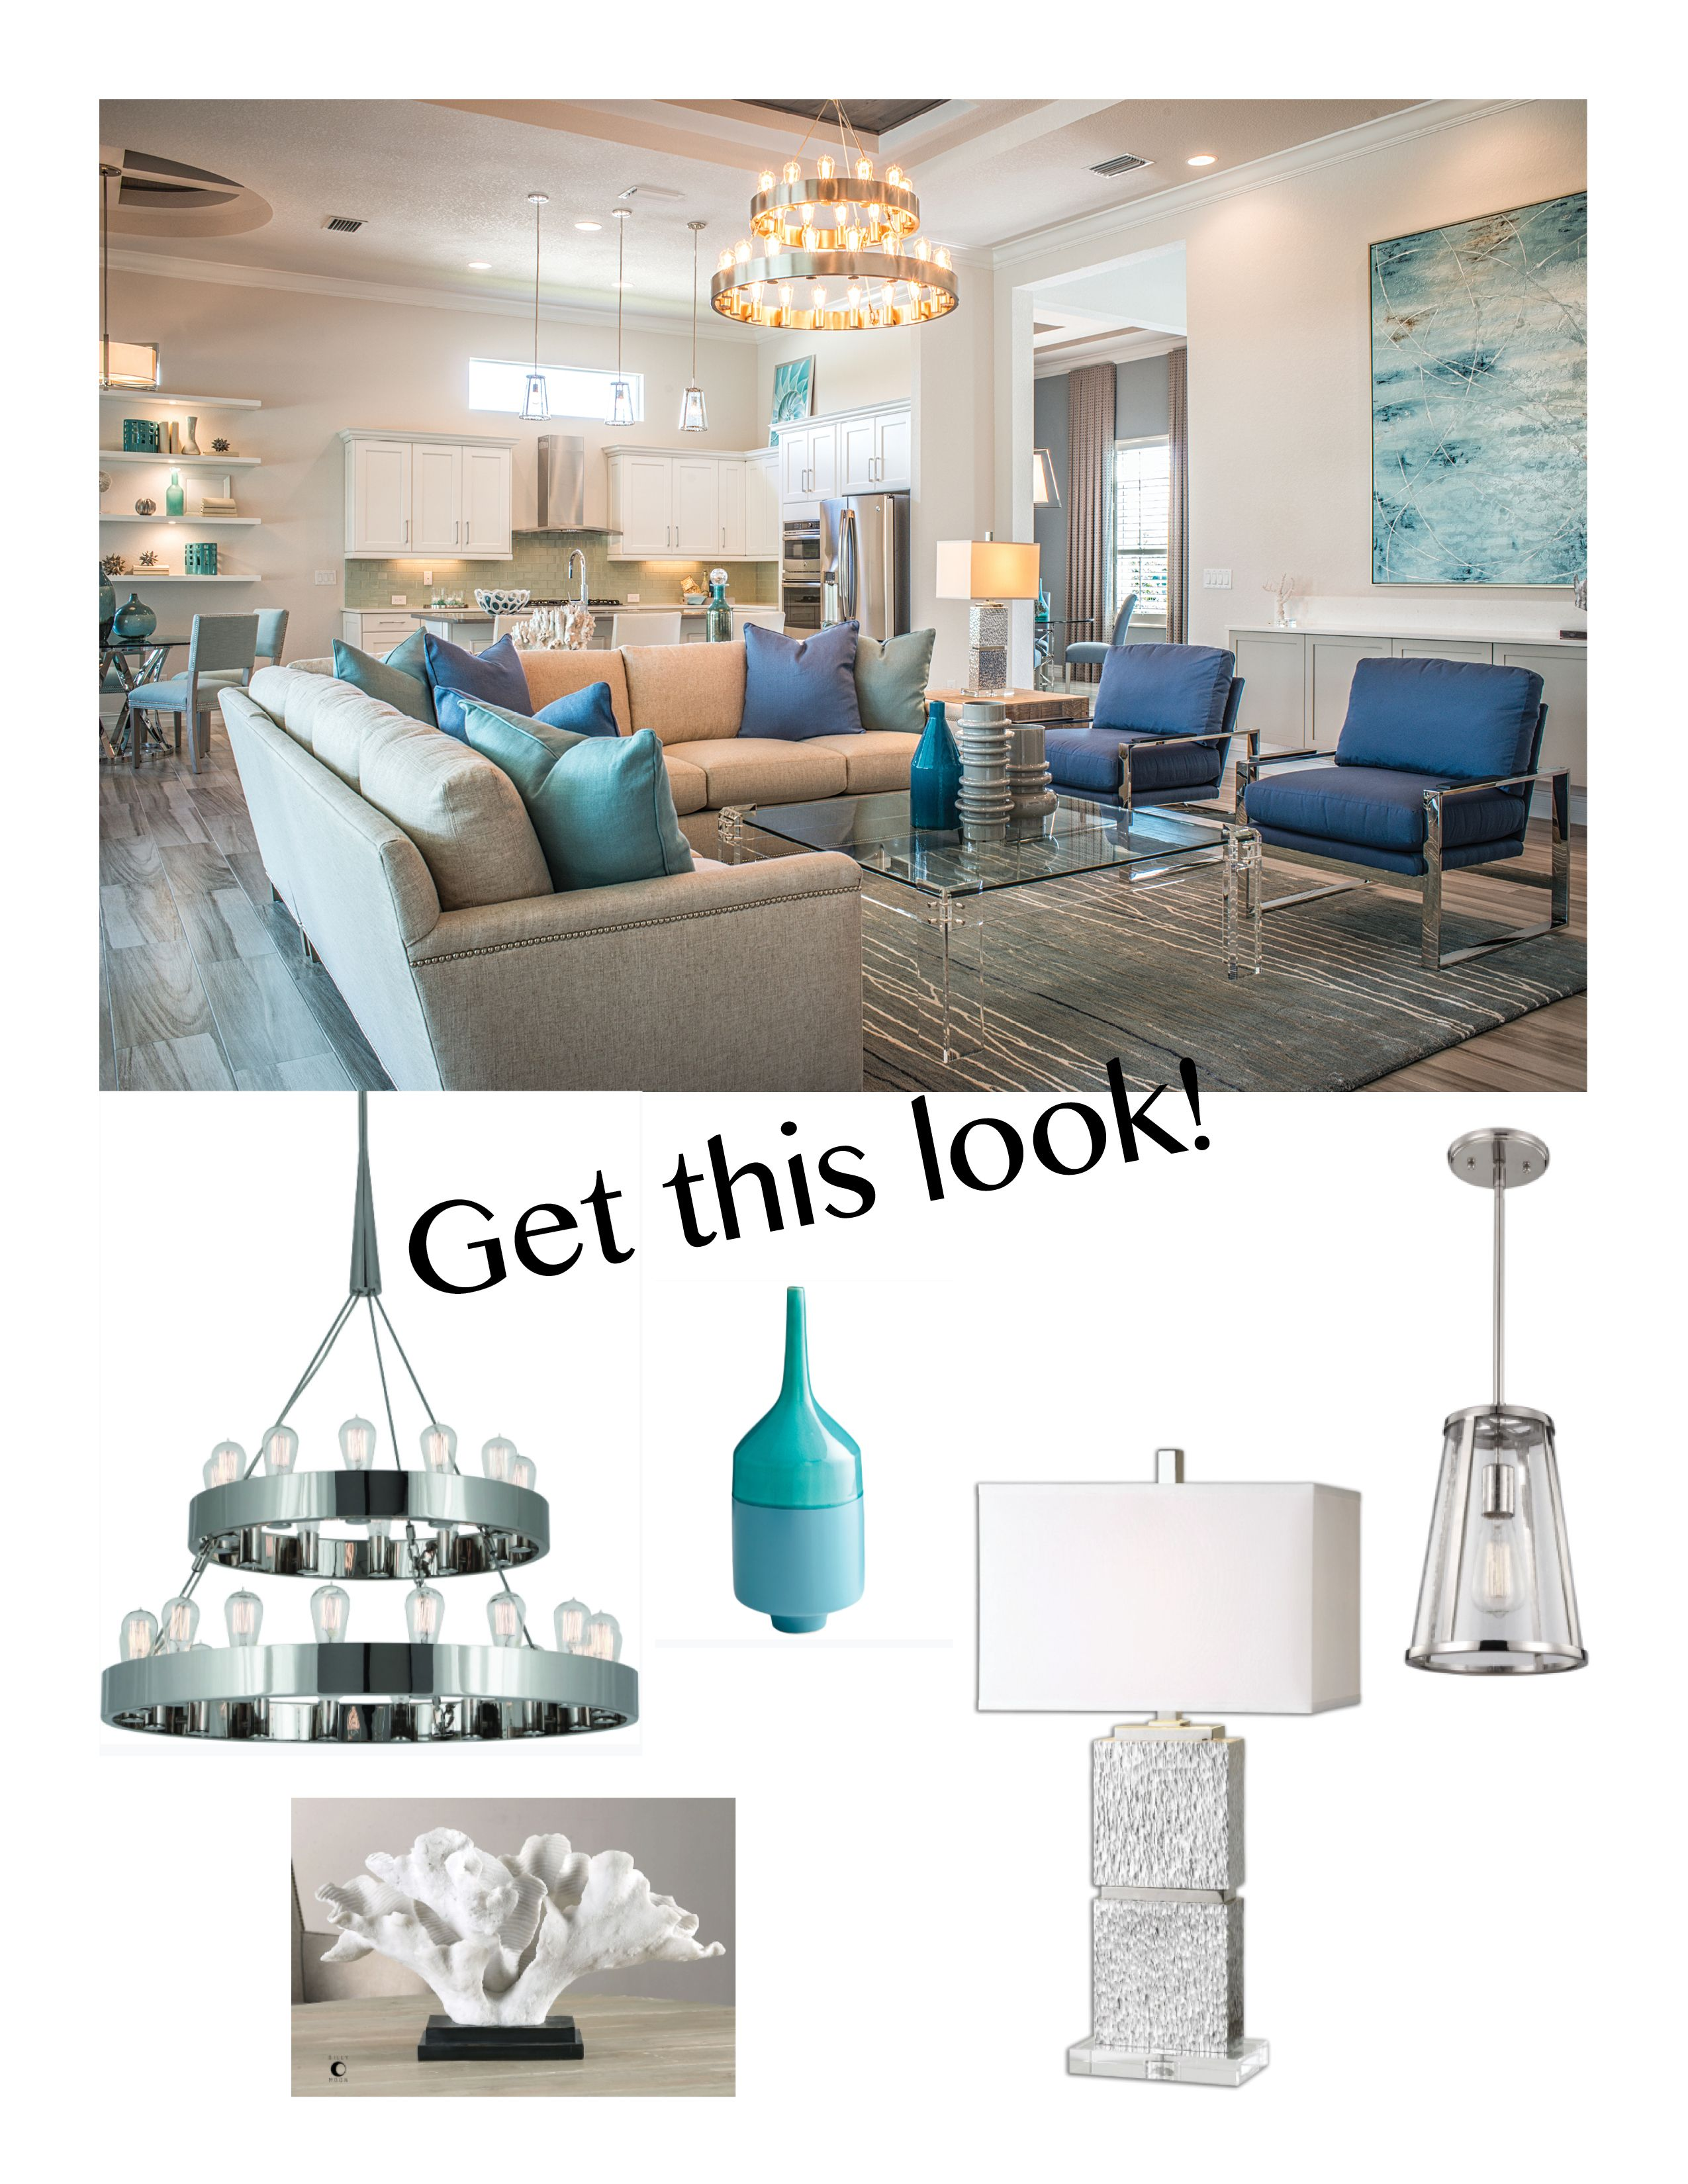 Wilson Lighting offers quality light fixtures for the Naples u0026 Bonita Springs FL and both the Kansas City u0026 St. Visit us today to browse our inventory!  sc 1 st  Pinterest & Get this coastal look online from Wilson Lighting! | Relaxing ...